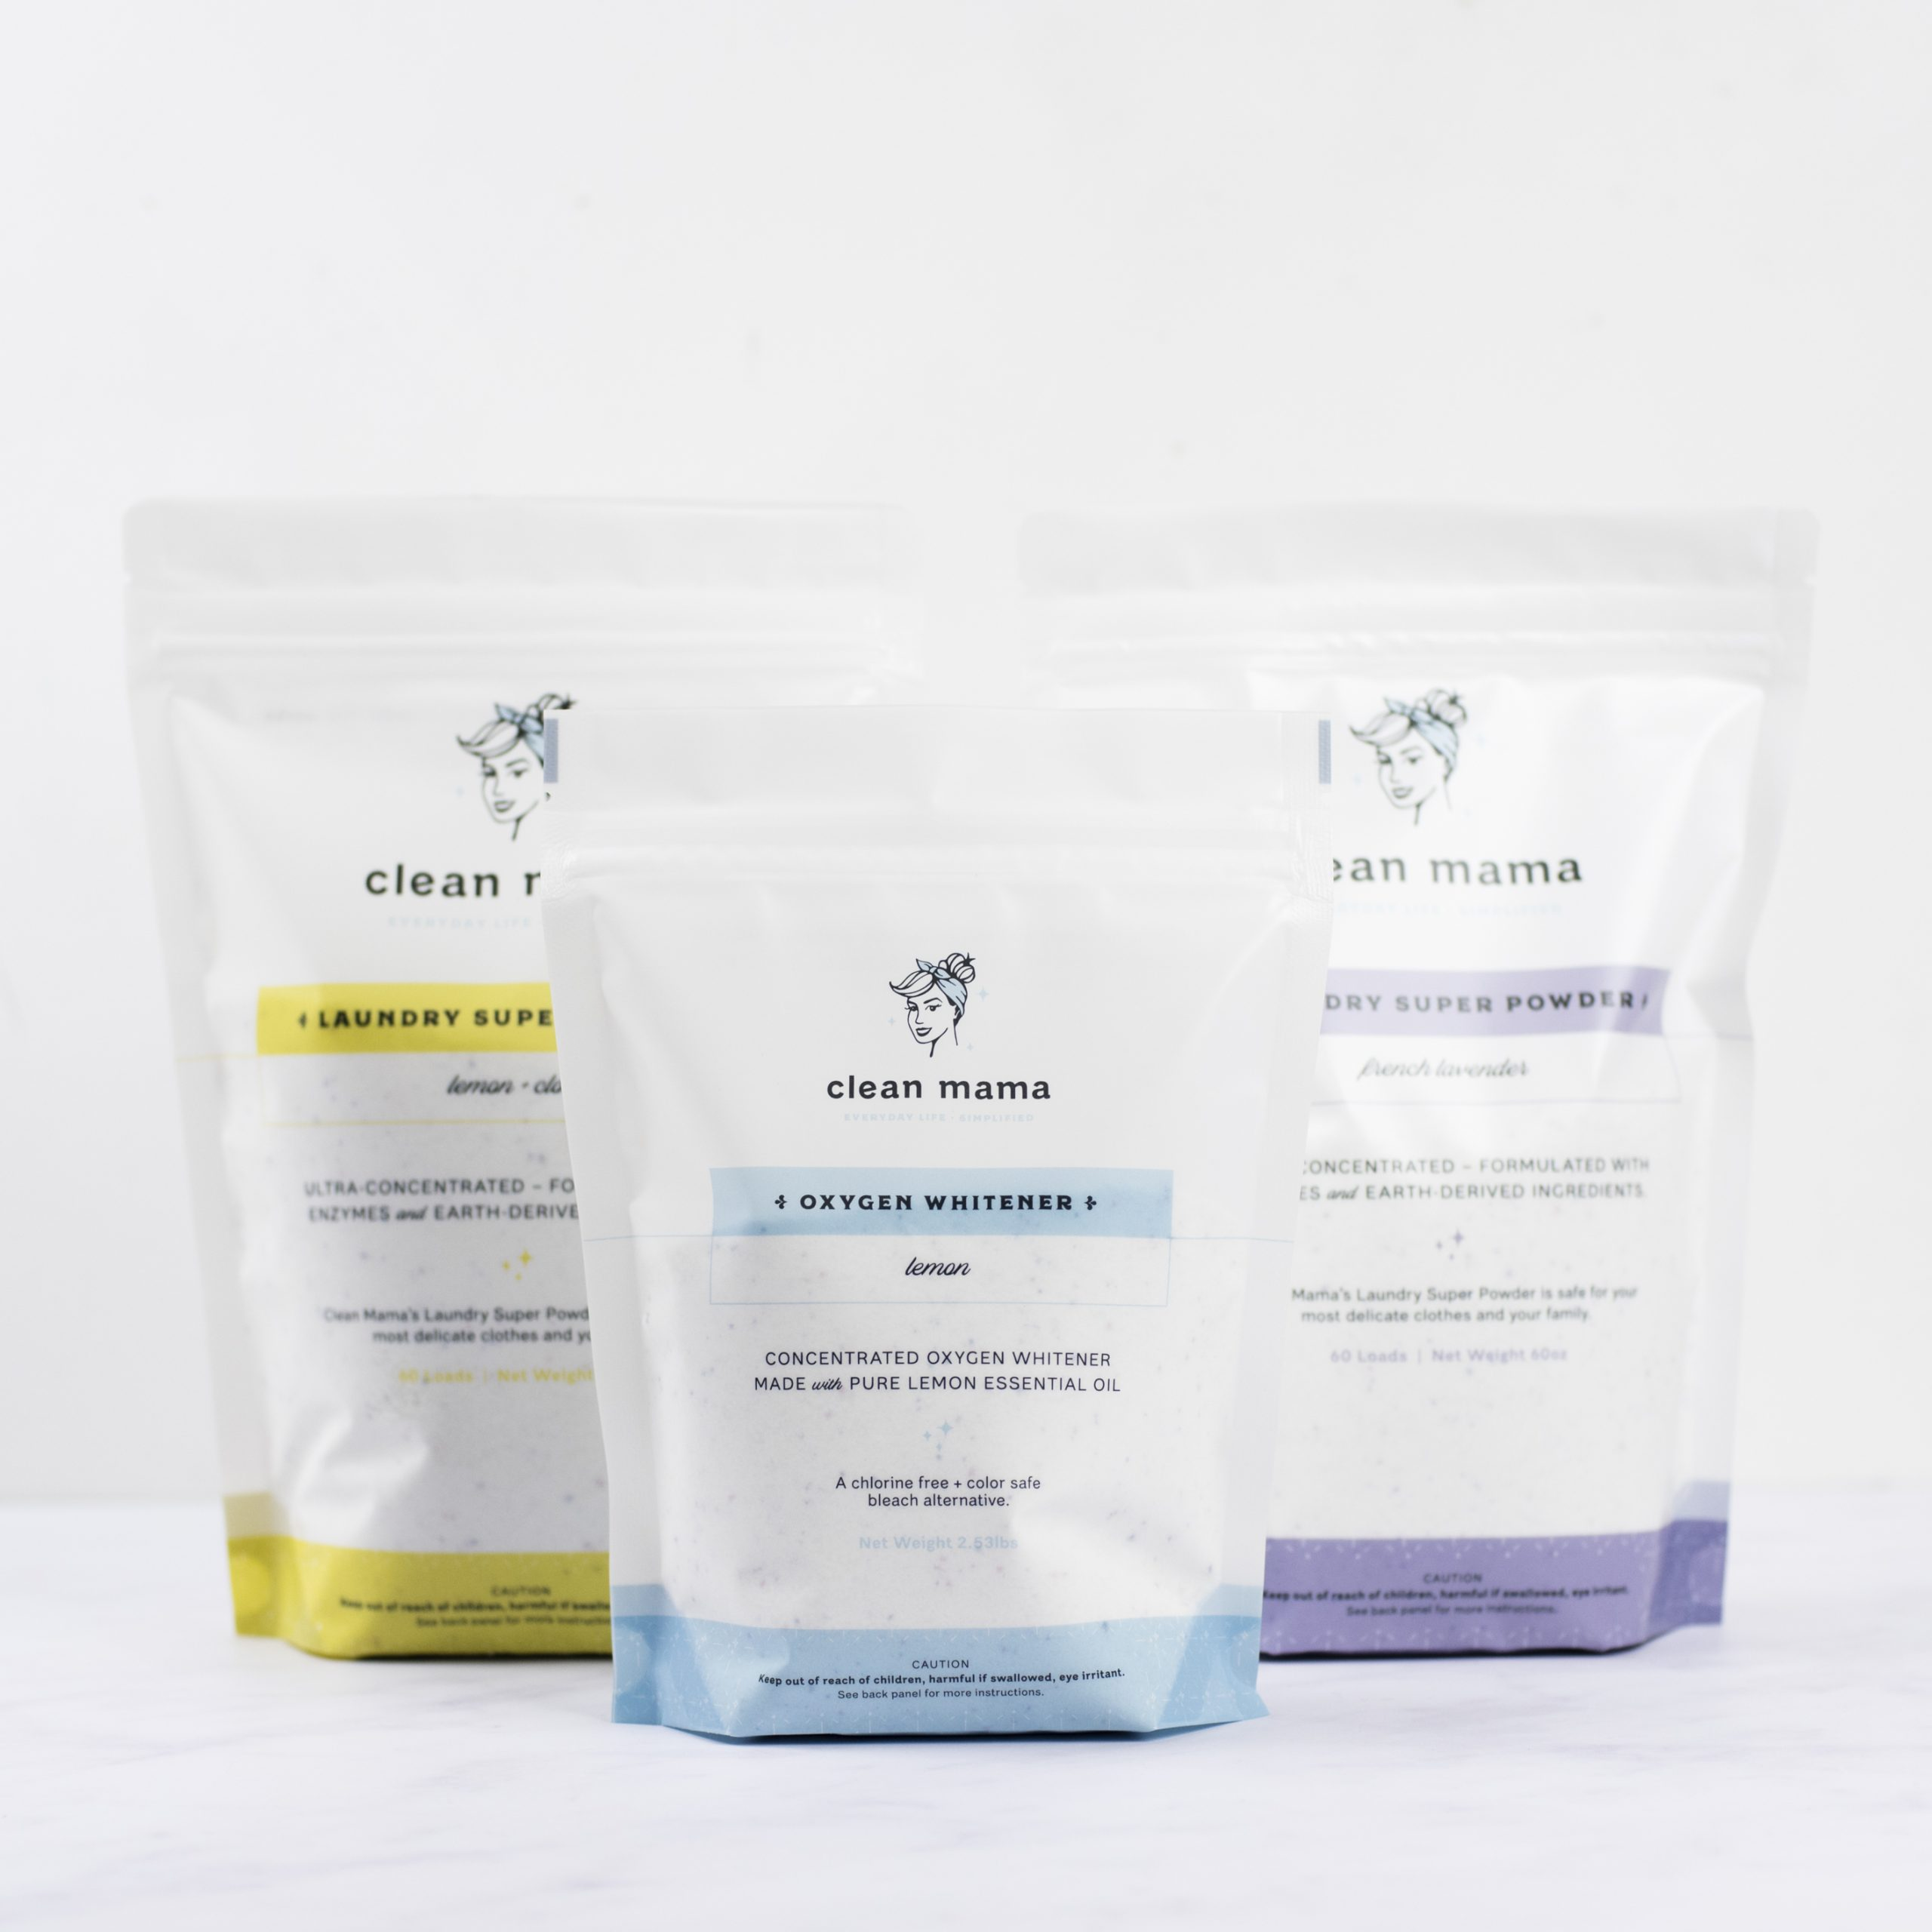 Laundry Restock, New Formula + a 2- DAY Laundry Sale! – Clean Mama